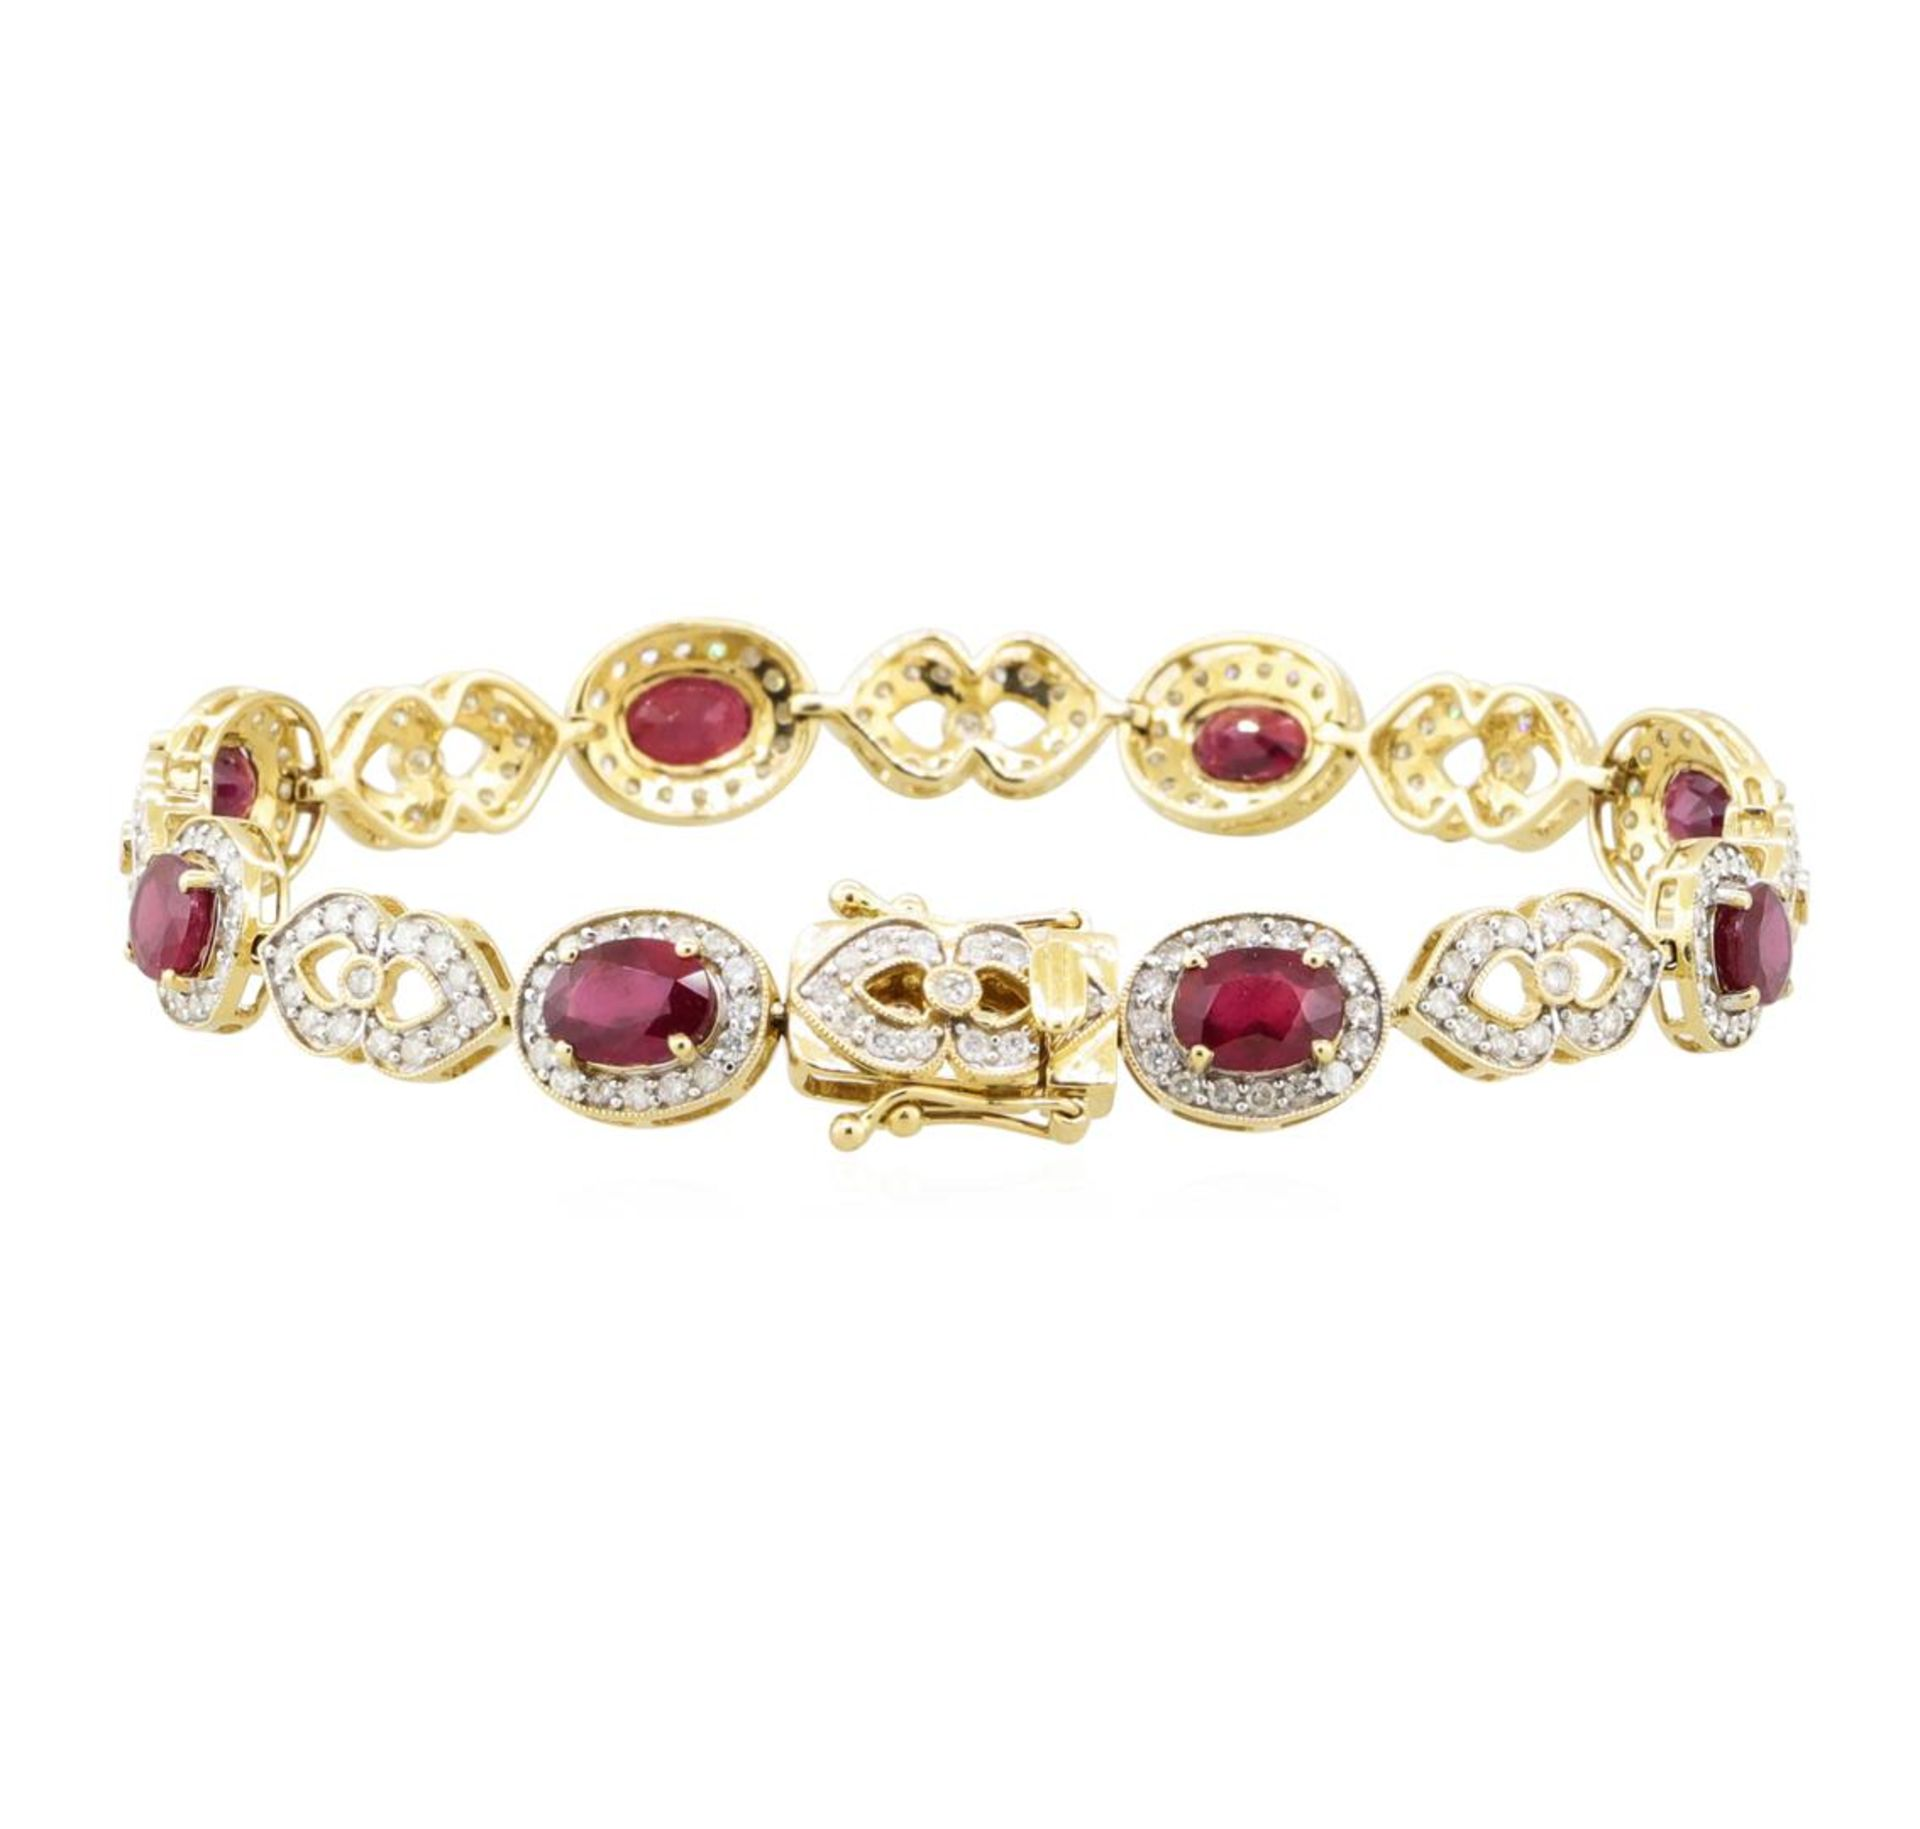 9.32 ctw Ruby and Diamond Bracelet - 14KT Yellow Gold - Image 3 of 3